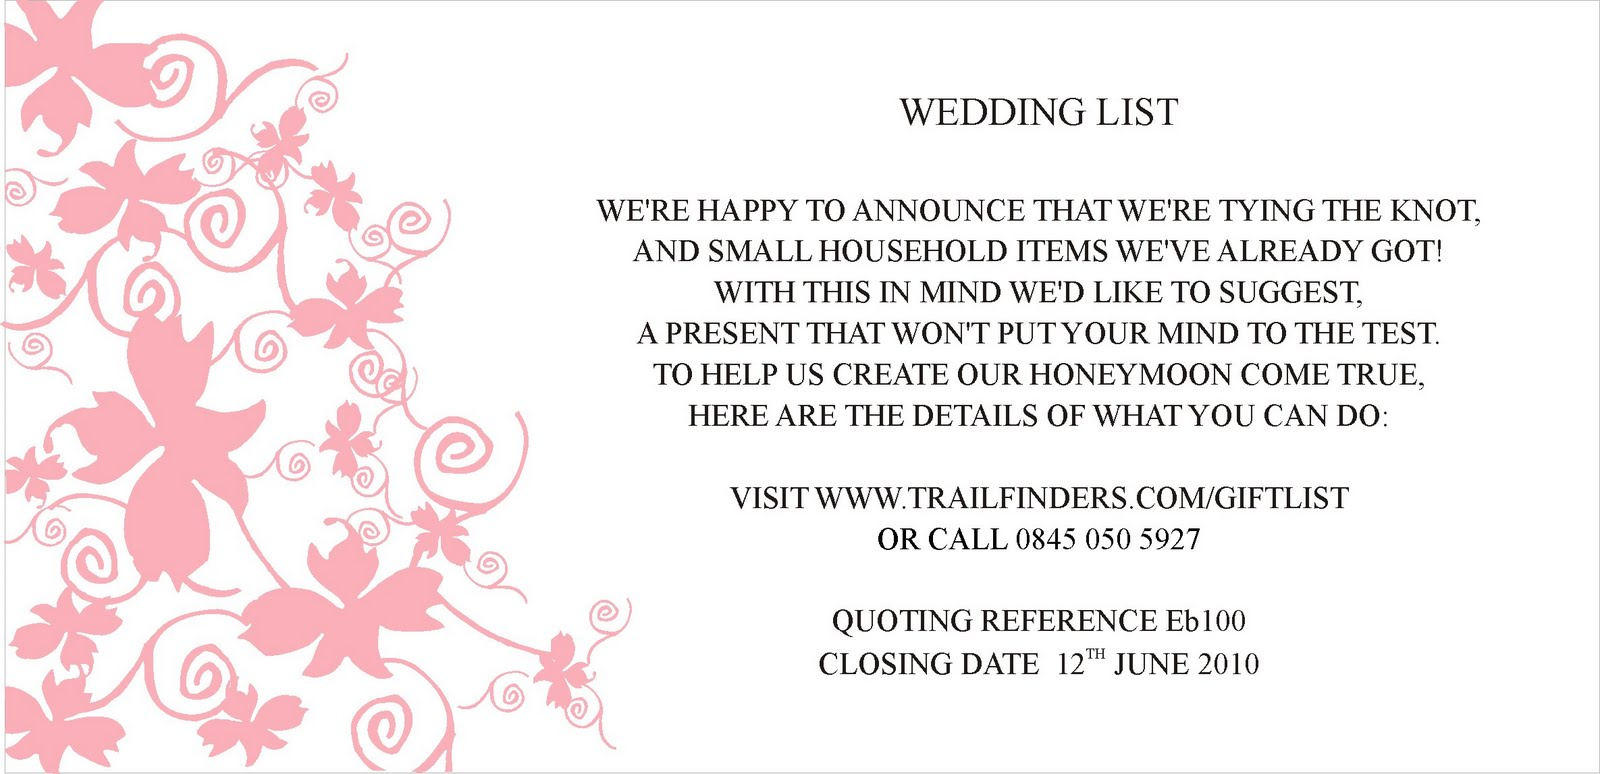 Wedding Gift Cards Online: Inspiration For Weddings, Invitations And Stationery: May 2010